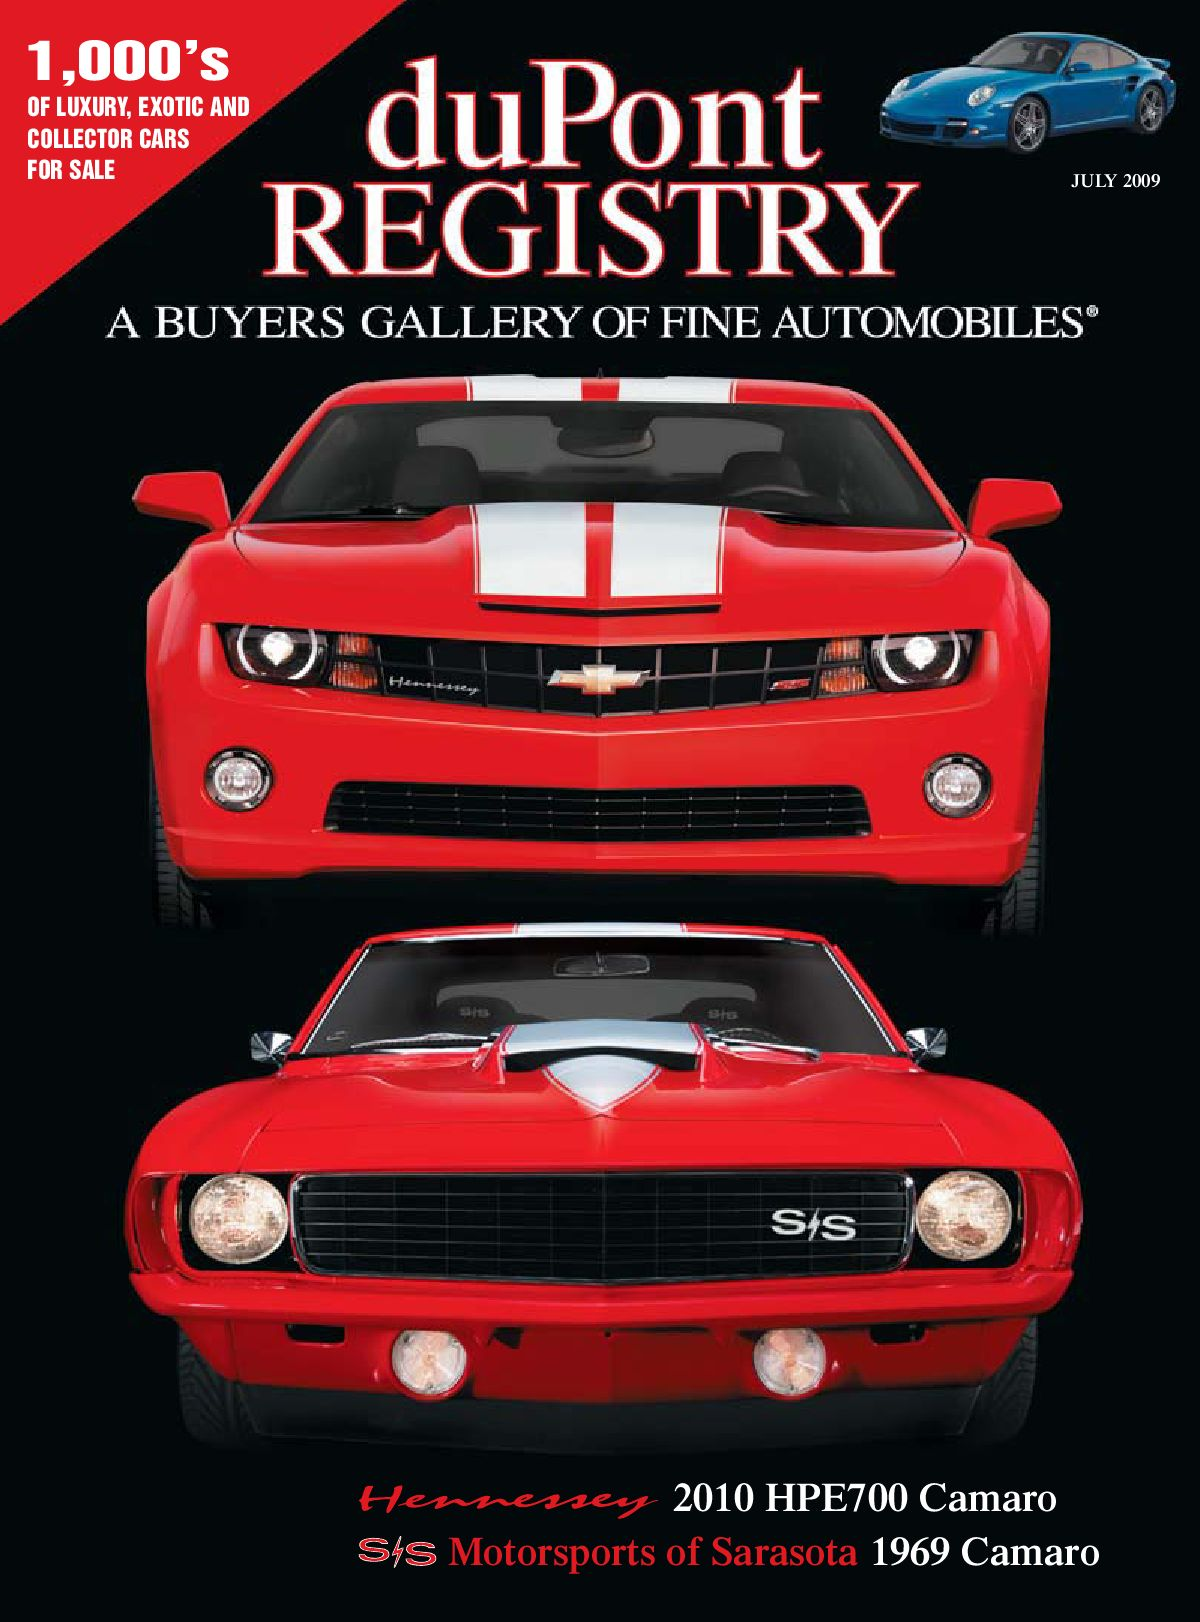 duPontREGISTRY Autos July 2009 by duPont REGISTRY issuu